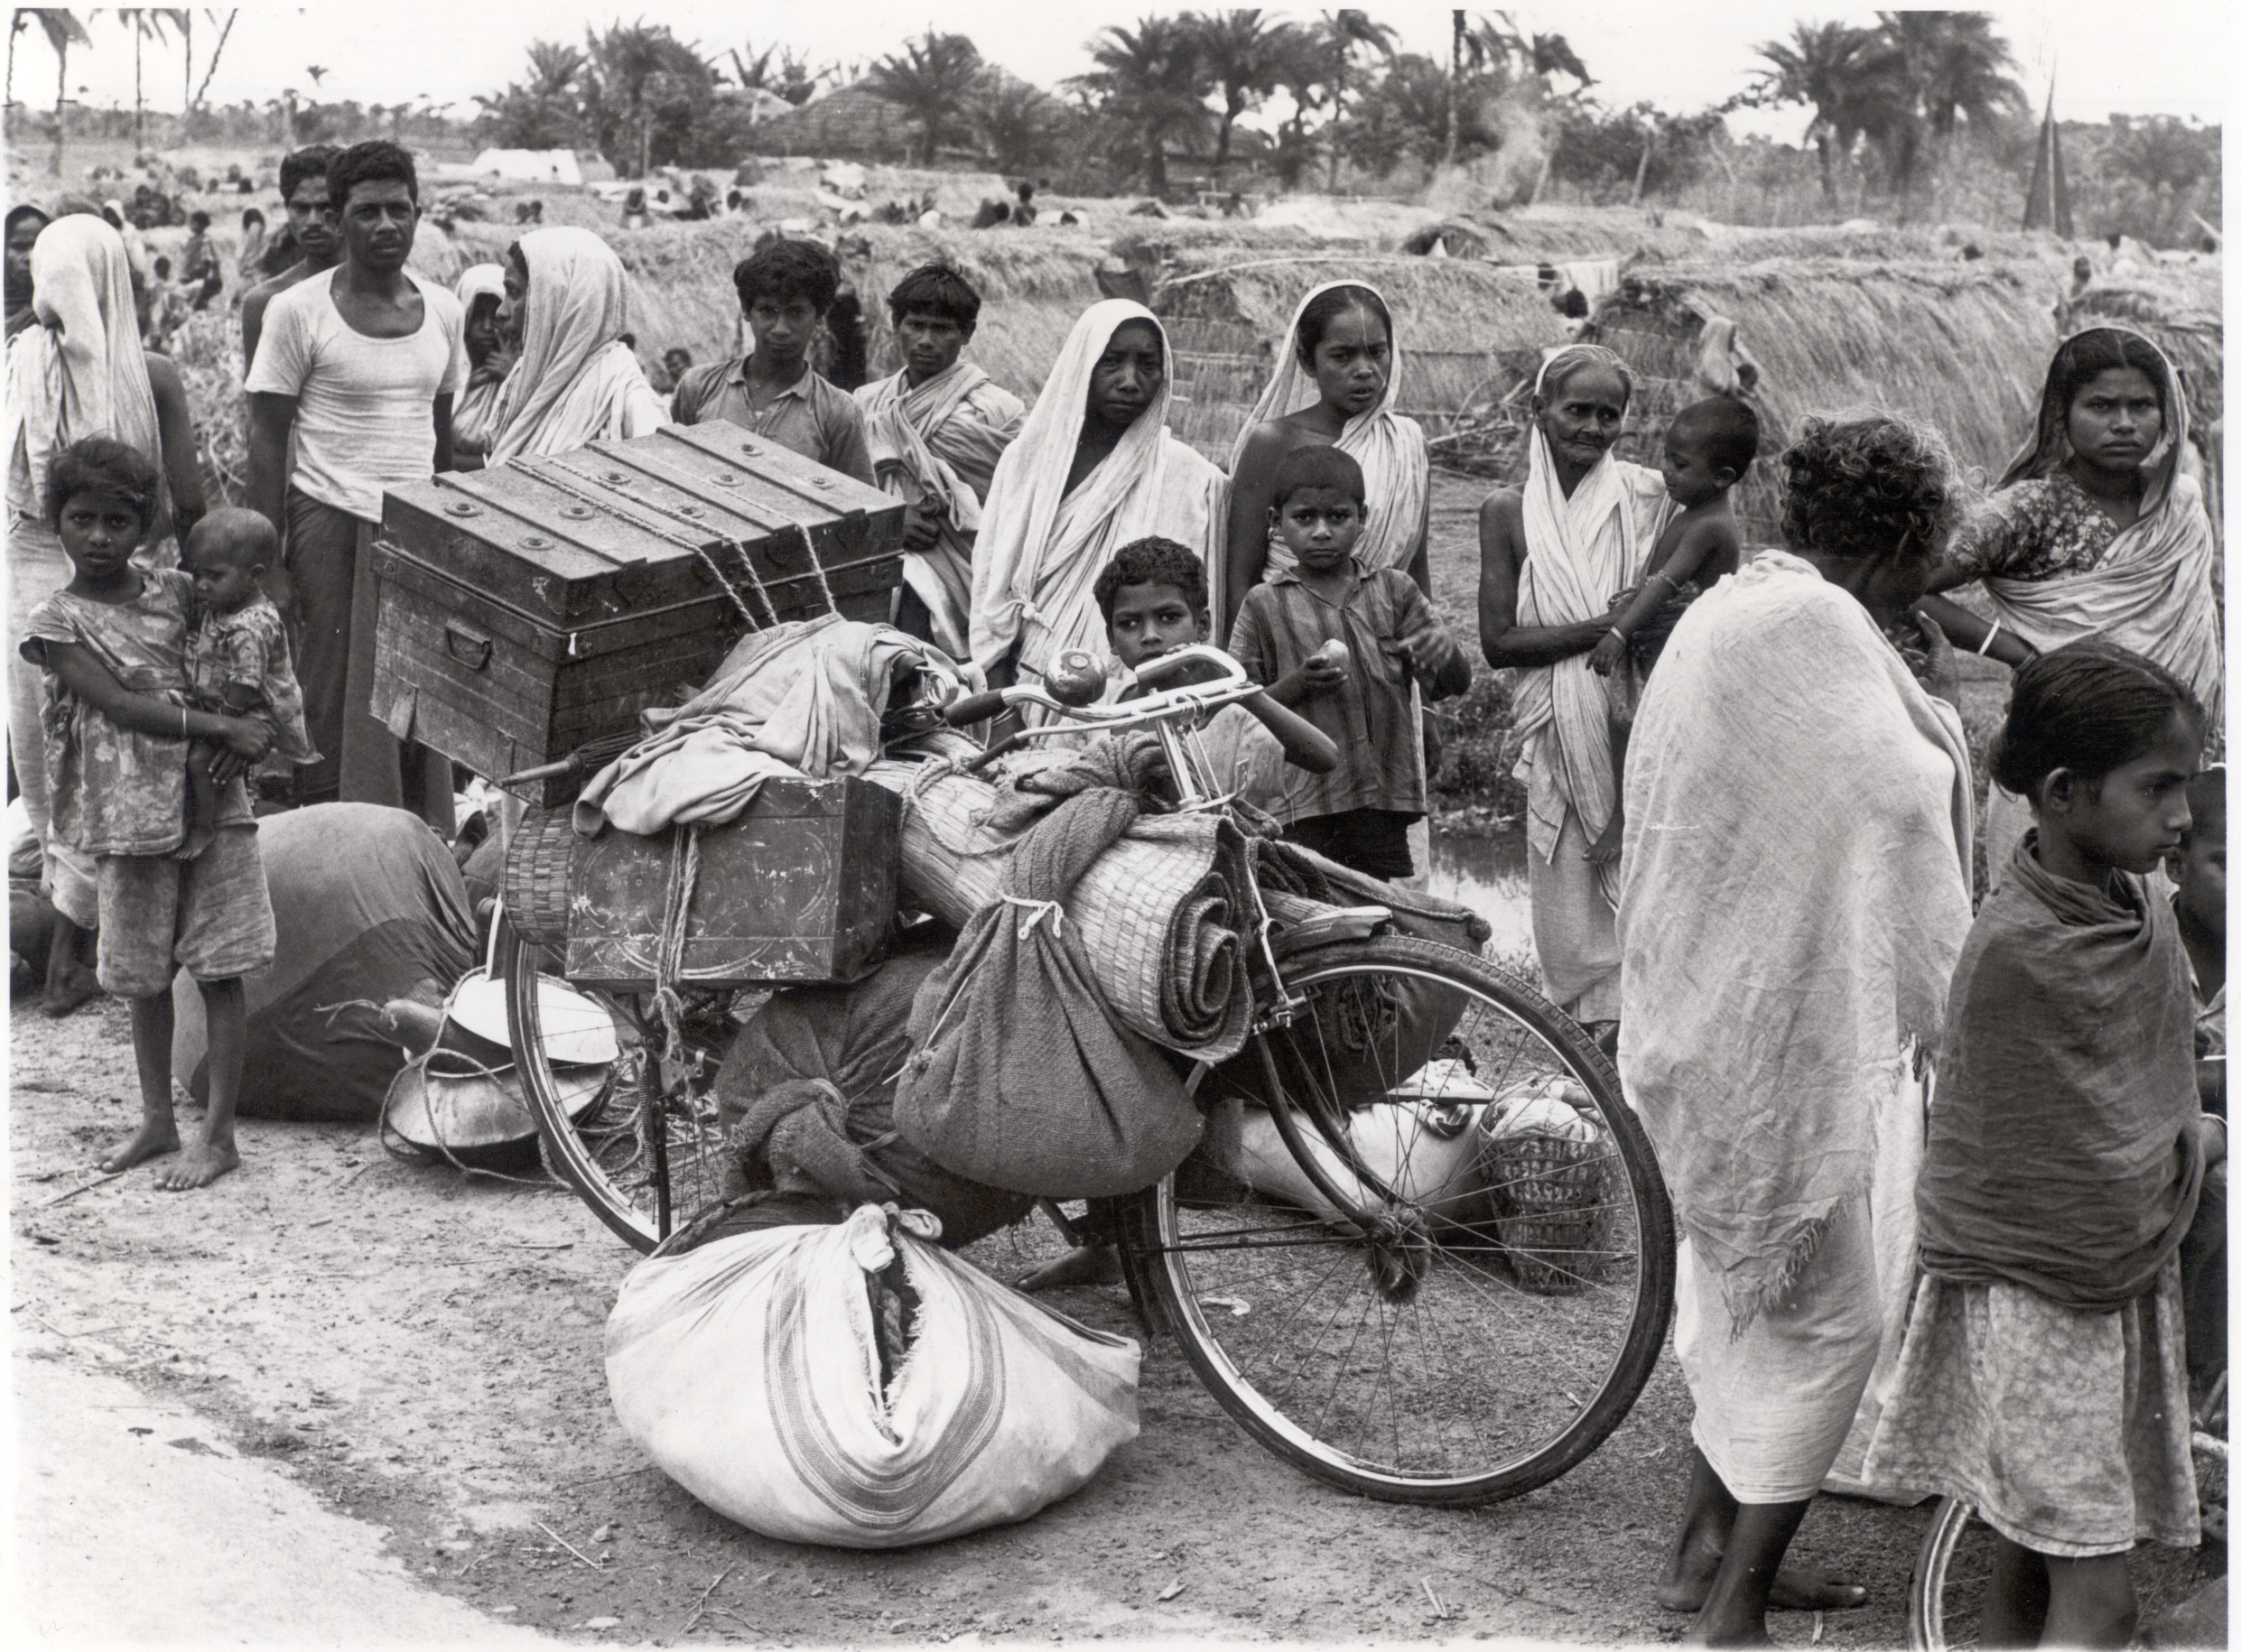 Refugees from the civil war in East Pakistan (later Bangladesh) in India, 1971. In response, Oxfam launched a health programme serving 500,000 people and, on the creation of Bangladesh the following year, its largest country rehabilitation and development programme to that date. Photo credit: Alan Leather / Oxfam (Oxfam Archive, Bodleian Library)